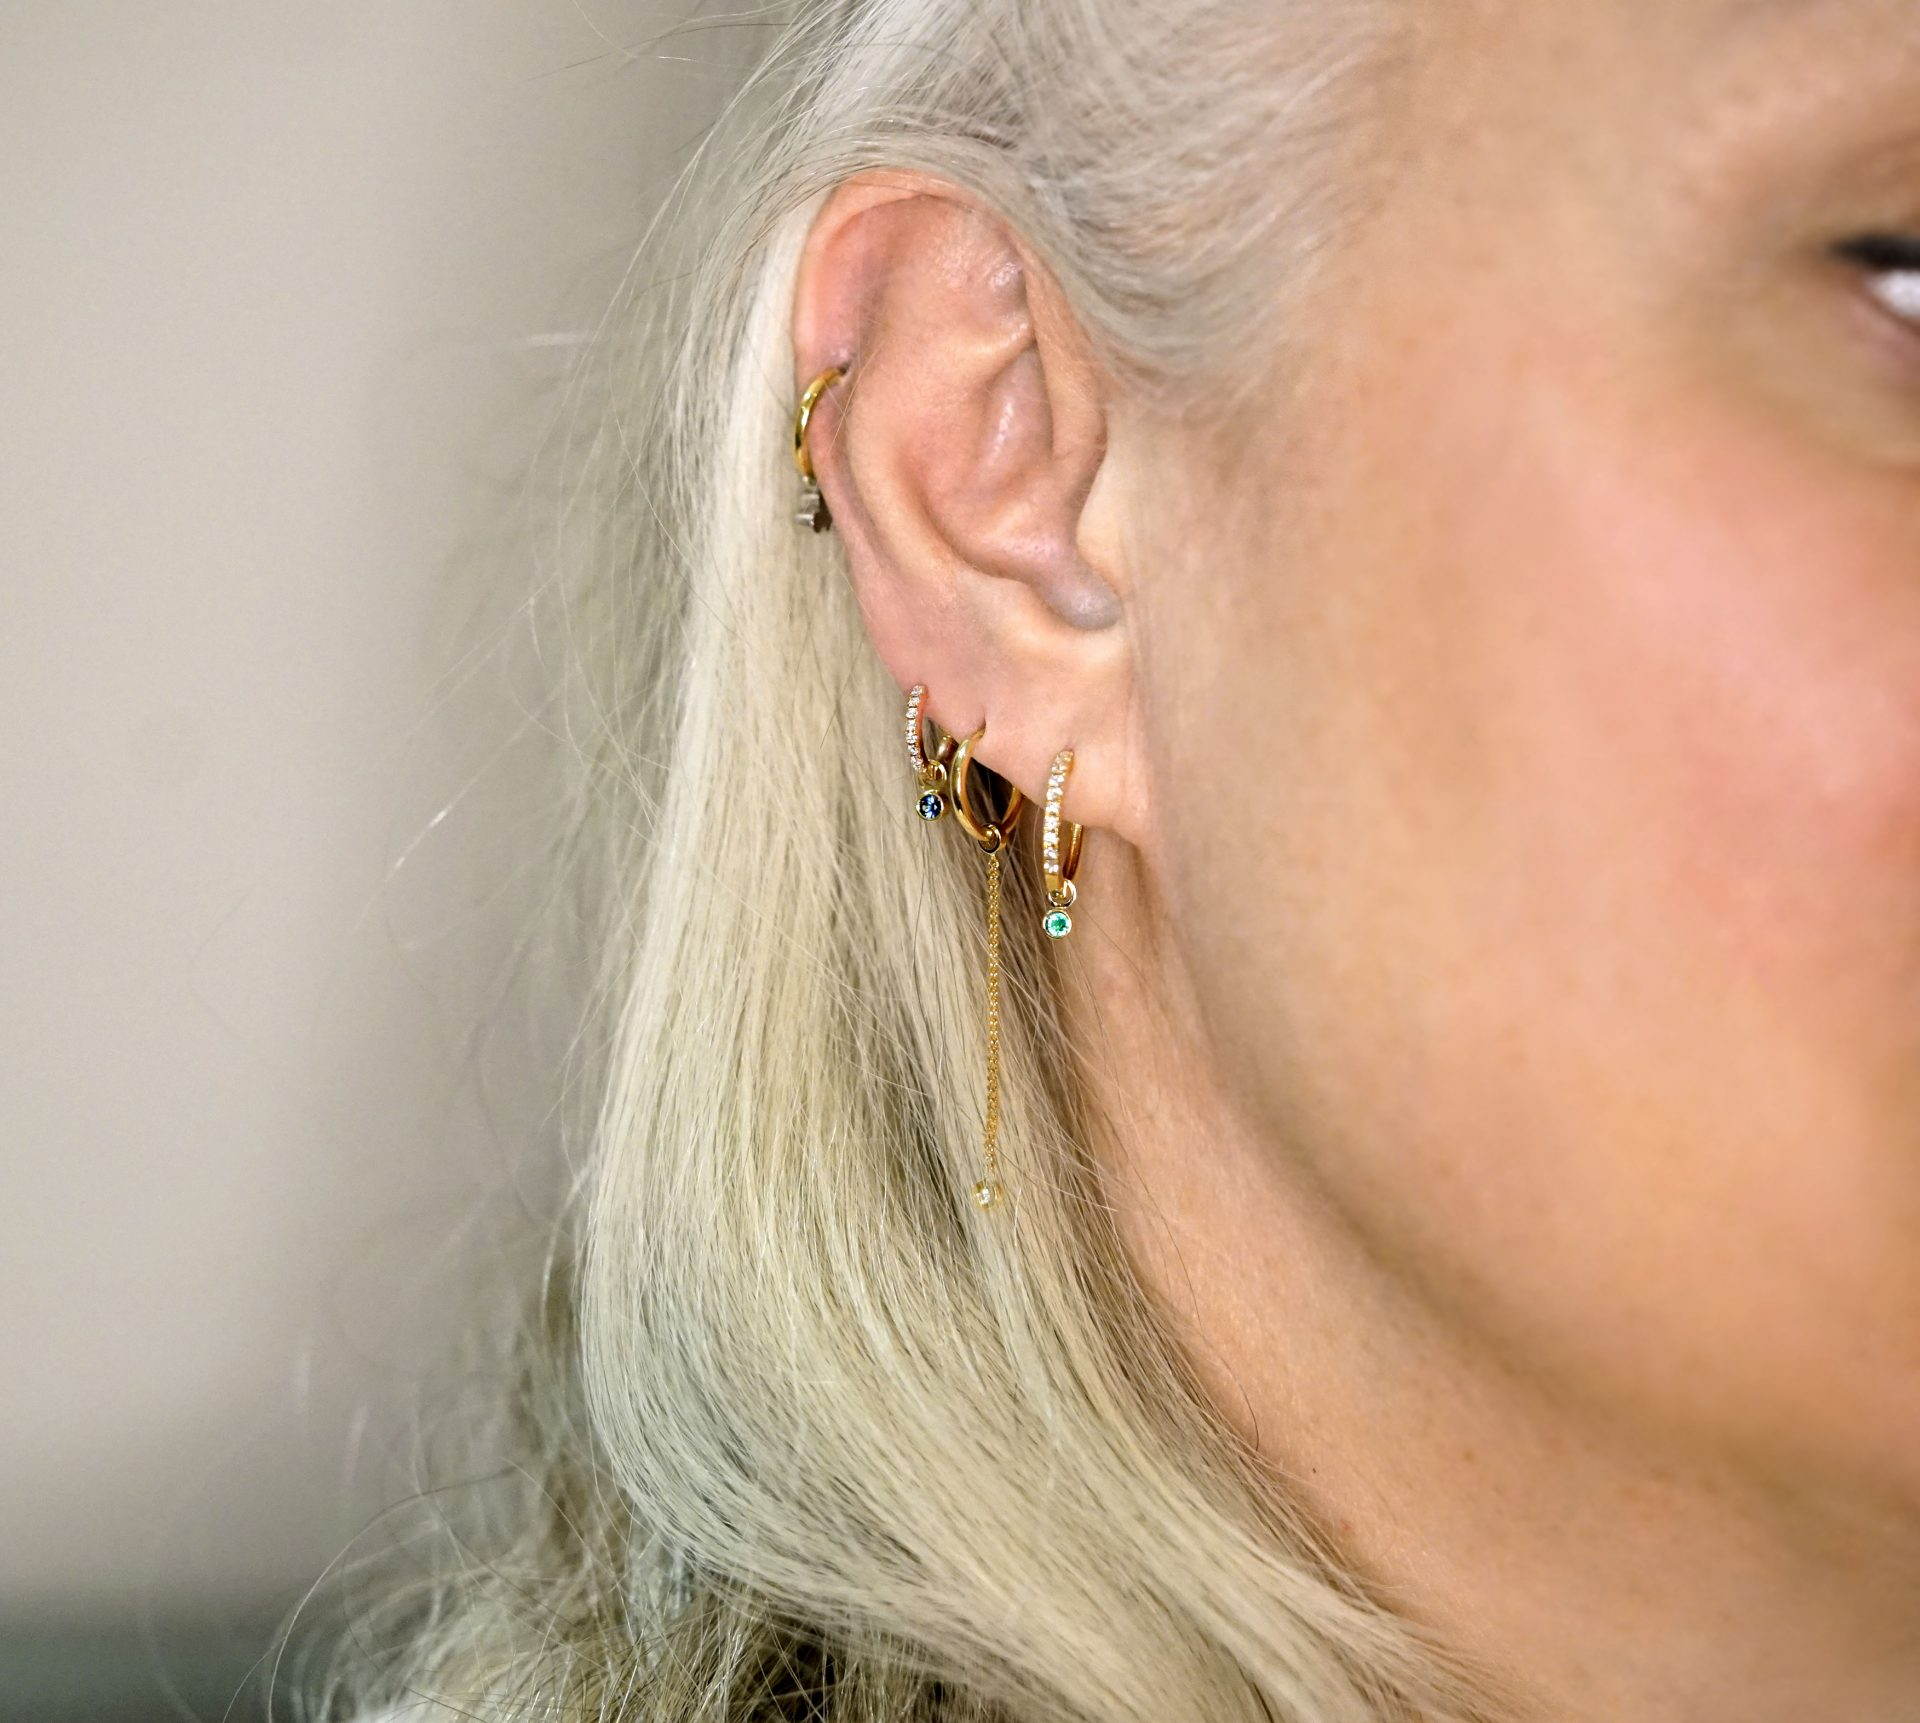 ear-stack-combination-for-women-over-50-anti-age-fashion-style-jewellery-blog-lena-cohen